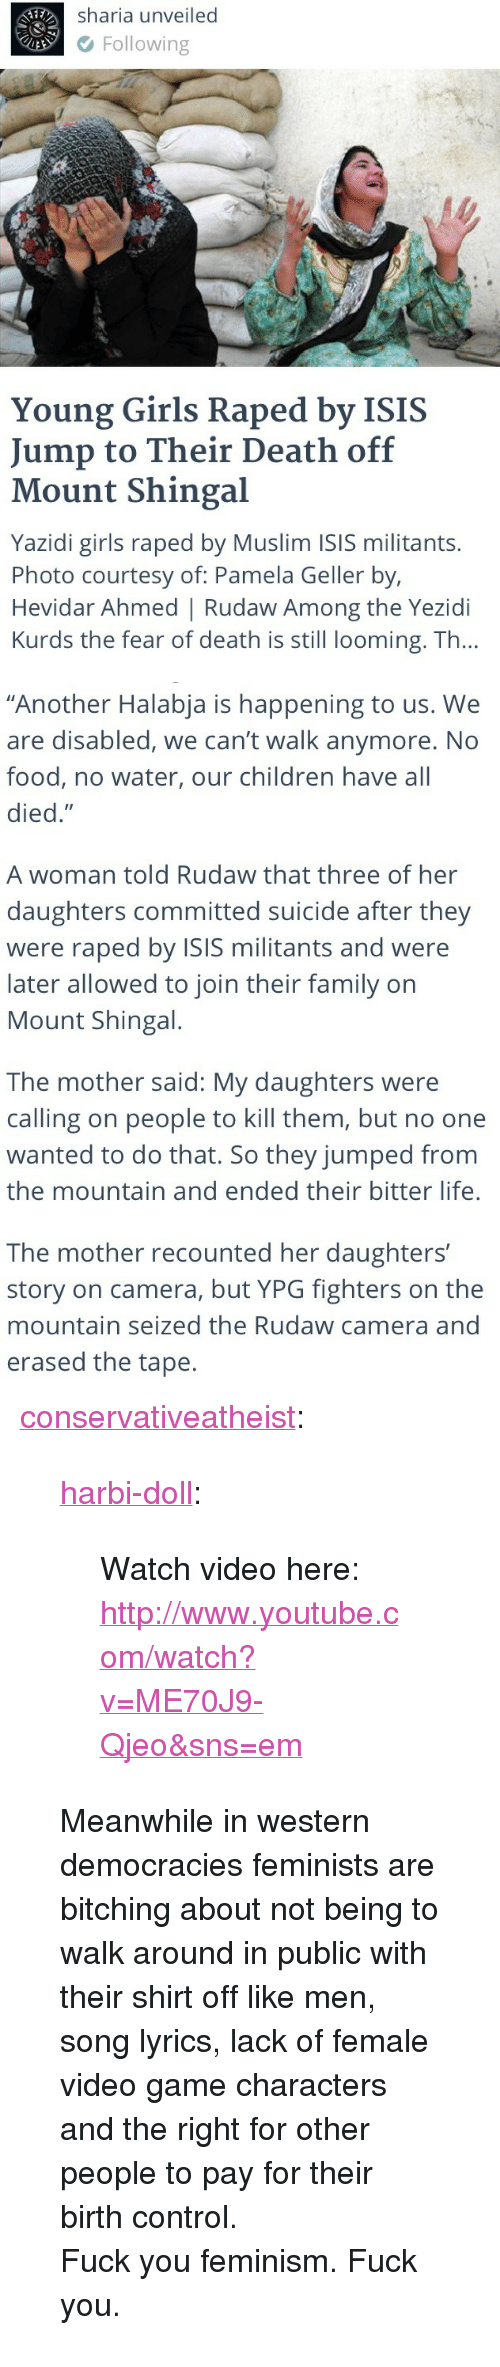 "Children, Family, and Feminism: Sharia unveiled  Following  Young Girls Raped by ISIS  Jump to Their Death off  Mount Shingal  Yazidi girls raped by Muslim ISIS militants.  Photo courtesy of: Pamela Geller by,  Hevidar Ahmed | Rudaw Among the Yezidi  Kurds the fear of death is still looming. Th...   ""Another Halabja is happening to us. We  are disabled, we can't walk anymore. No  food, no water, our children have all  died.""  A woman told Rudaw that three of her  daughters committed suicide after they  were raped by ISIS militants and were  later allowed to join their family on  Mount Shingal.  The mother said: My daughters were  calling on people to kill them, but no one  wanted to do that. So they jumped from  the mountain and ended their bitter life.  The mother recounted her daughters'  story on camera, but YPG fighters on the  mountain seized the Rudaw camera and  erased the tape. <p><a href=""http://conservativeatheist.tumblr.com/post/95437130100/harbi-doll-watch-video-here"" class=""tumblr_blog"">conservativeatheist</a>:</p>  <blockquote><p><a class=""tumblr_blog"" href=""http://harbi-doll.tumblr.com/post/95406583898/watch-video-here"">harbi-doll</a>:</p> <blockquote> <p>Watch video here:<br/><a href=""http://www.youtube.com/watch?v=ME70J9-Qjeo&amp;sns=em"">http://www.youtube.com/watch?v=ME70J9-Qjeo&amp;sns=em</a></p> </blockquote> <p>Meanwhile in western democracies feminists are bitching about not being to walk around in public with their shirt off like men, song lyrics, lack of female video game characters and the right for other people to pay for their birth control. </p> <p>Fuck you feminism. Fuck you. </p></blockquote>"